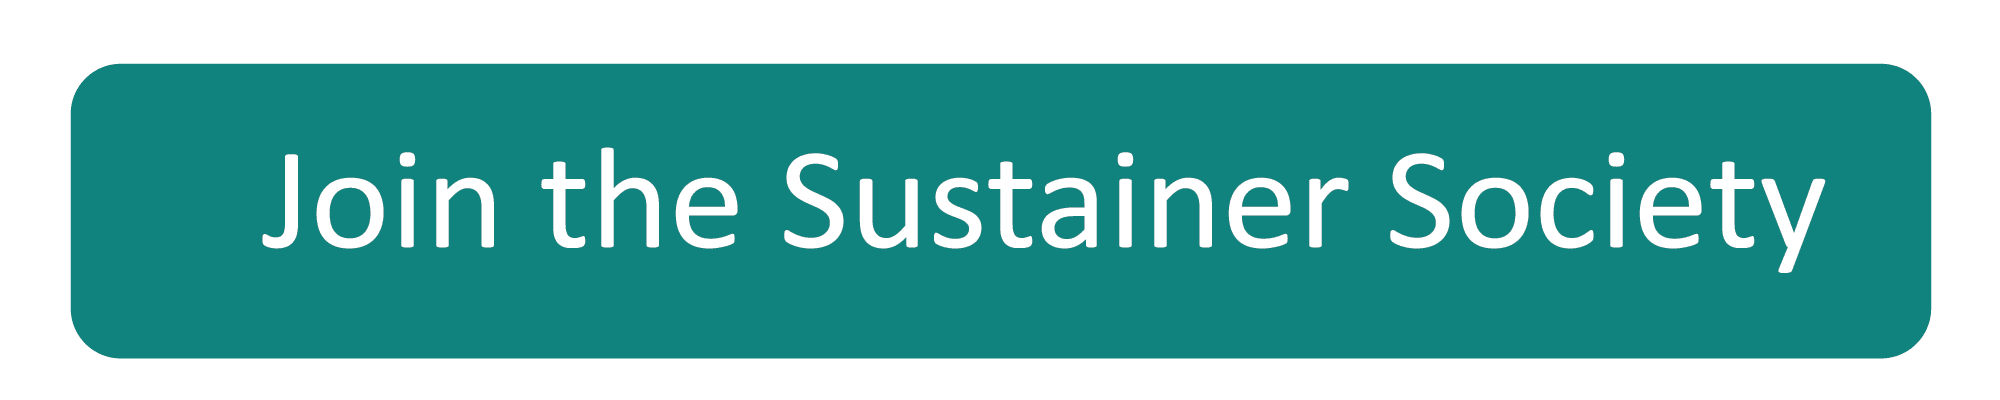 Join the Sustainer Society-05